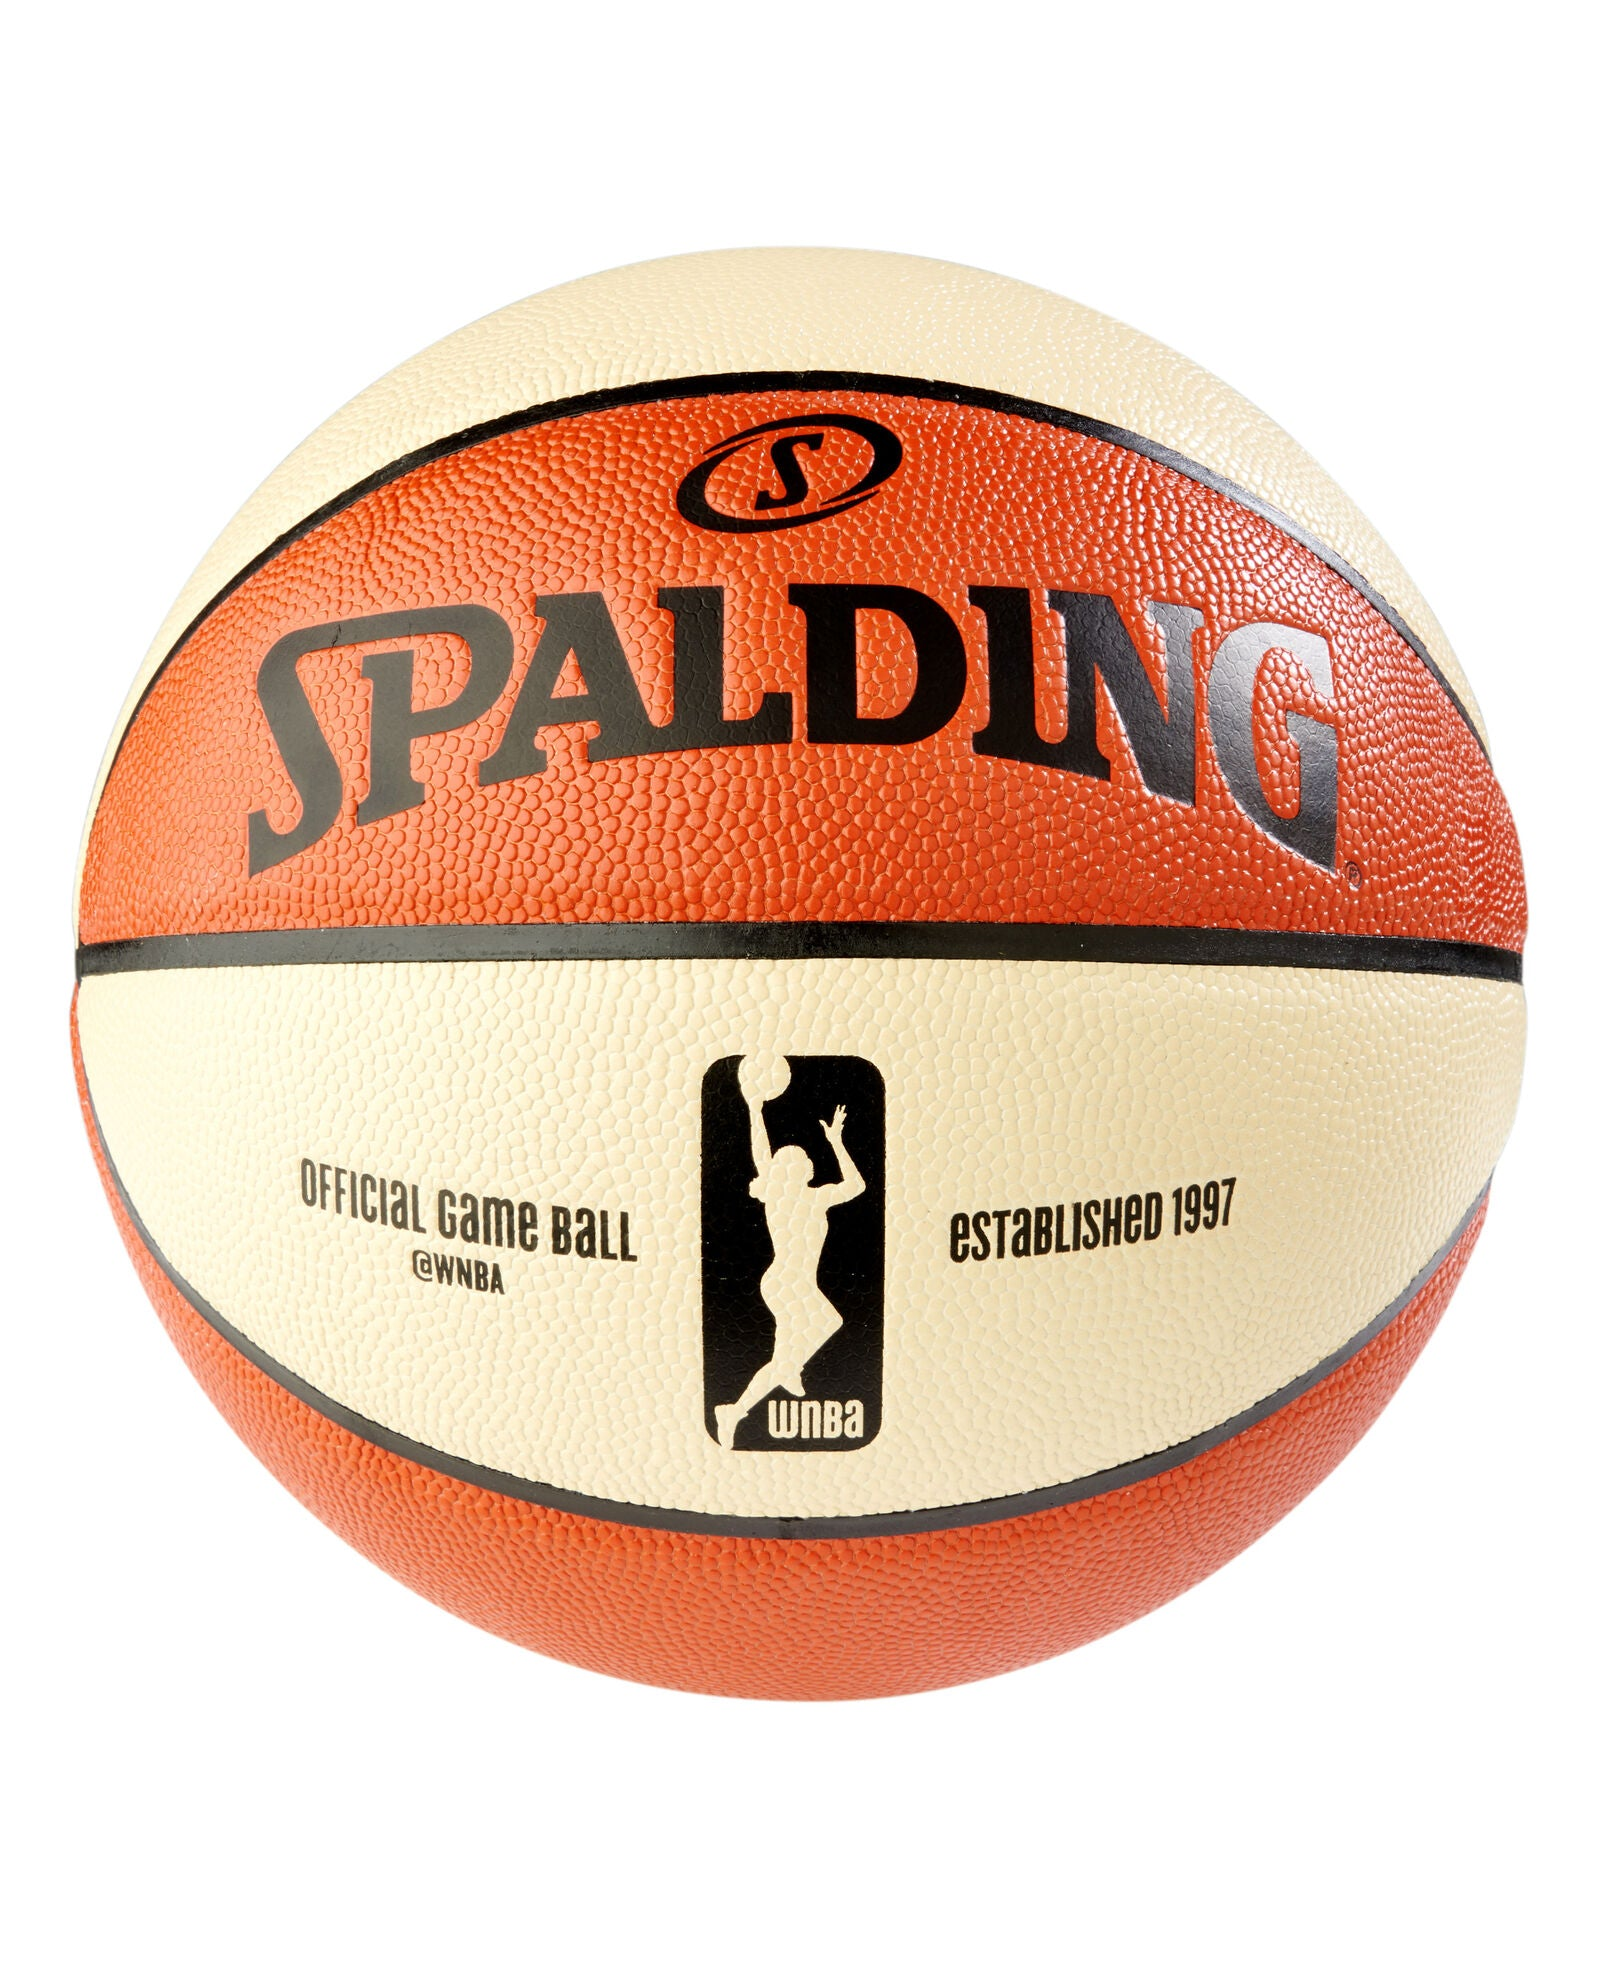 WNBA 2019 Official Game Ball